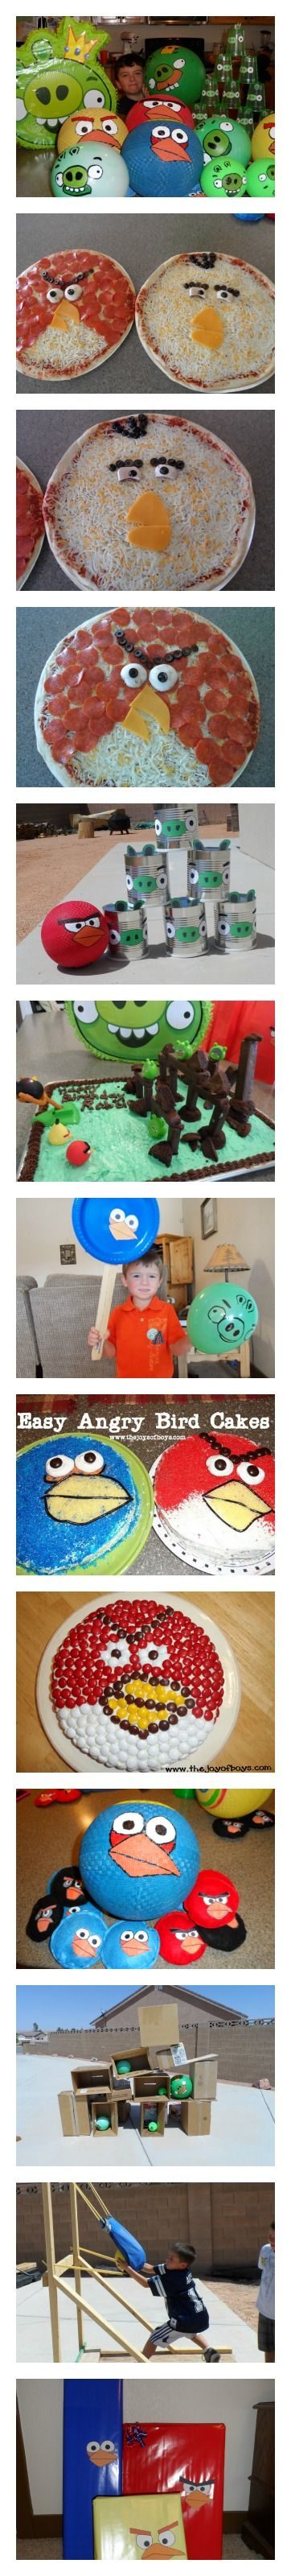 Everything you need to throw an amazing Angry Birds birthday party. Angry birds cakes, pizzas, party games, pinata and a giant Angry Birds game with life-size slingshot. Trust me, you'll be the coolest mom in town. www.thejoysofboys.com